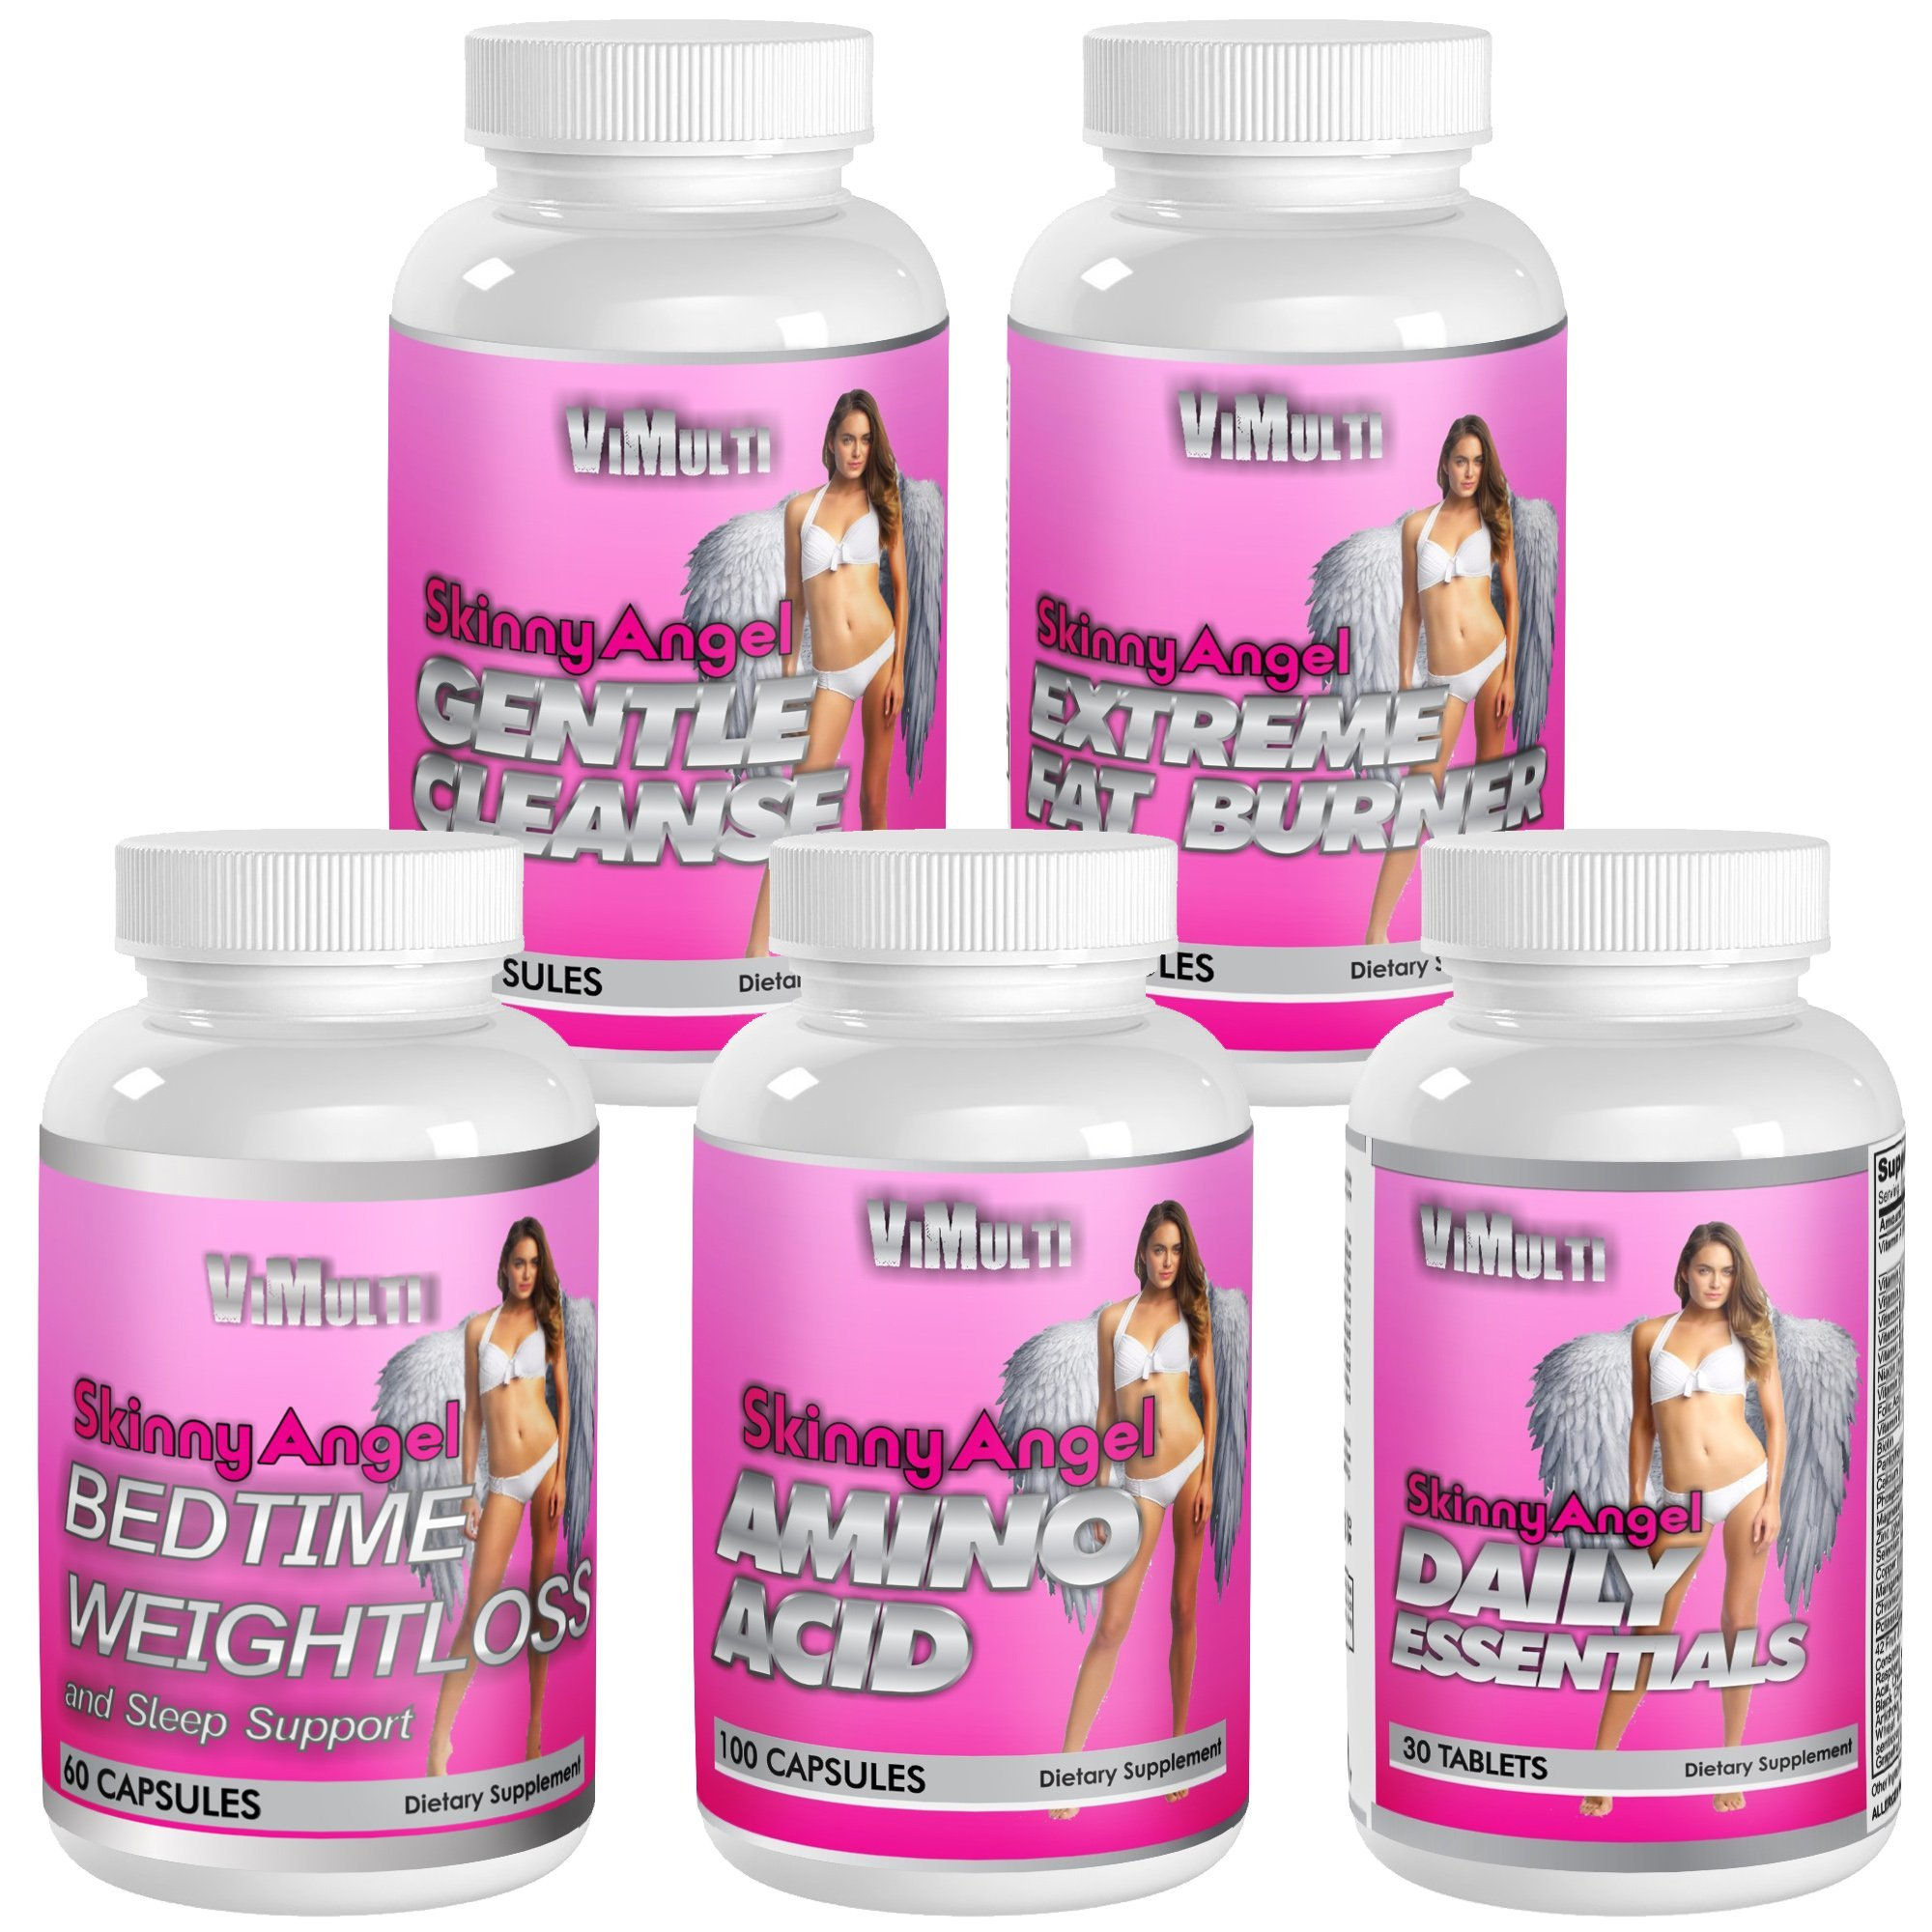 Skinny Angel WEIGHT LOSS PROGRAM with Fat Burner for Women, Night Time Fat Burner, Women's Amino Acid, Women's Multivitamin and Cleanse Supplement. BURN FAT DAY AND NIGHT